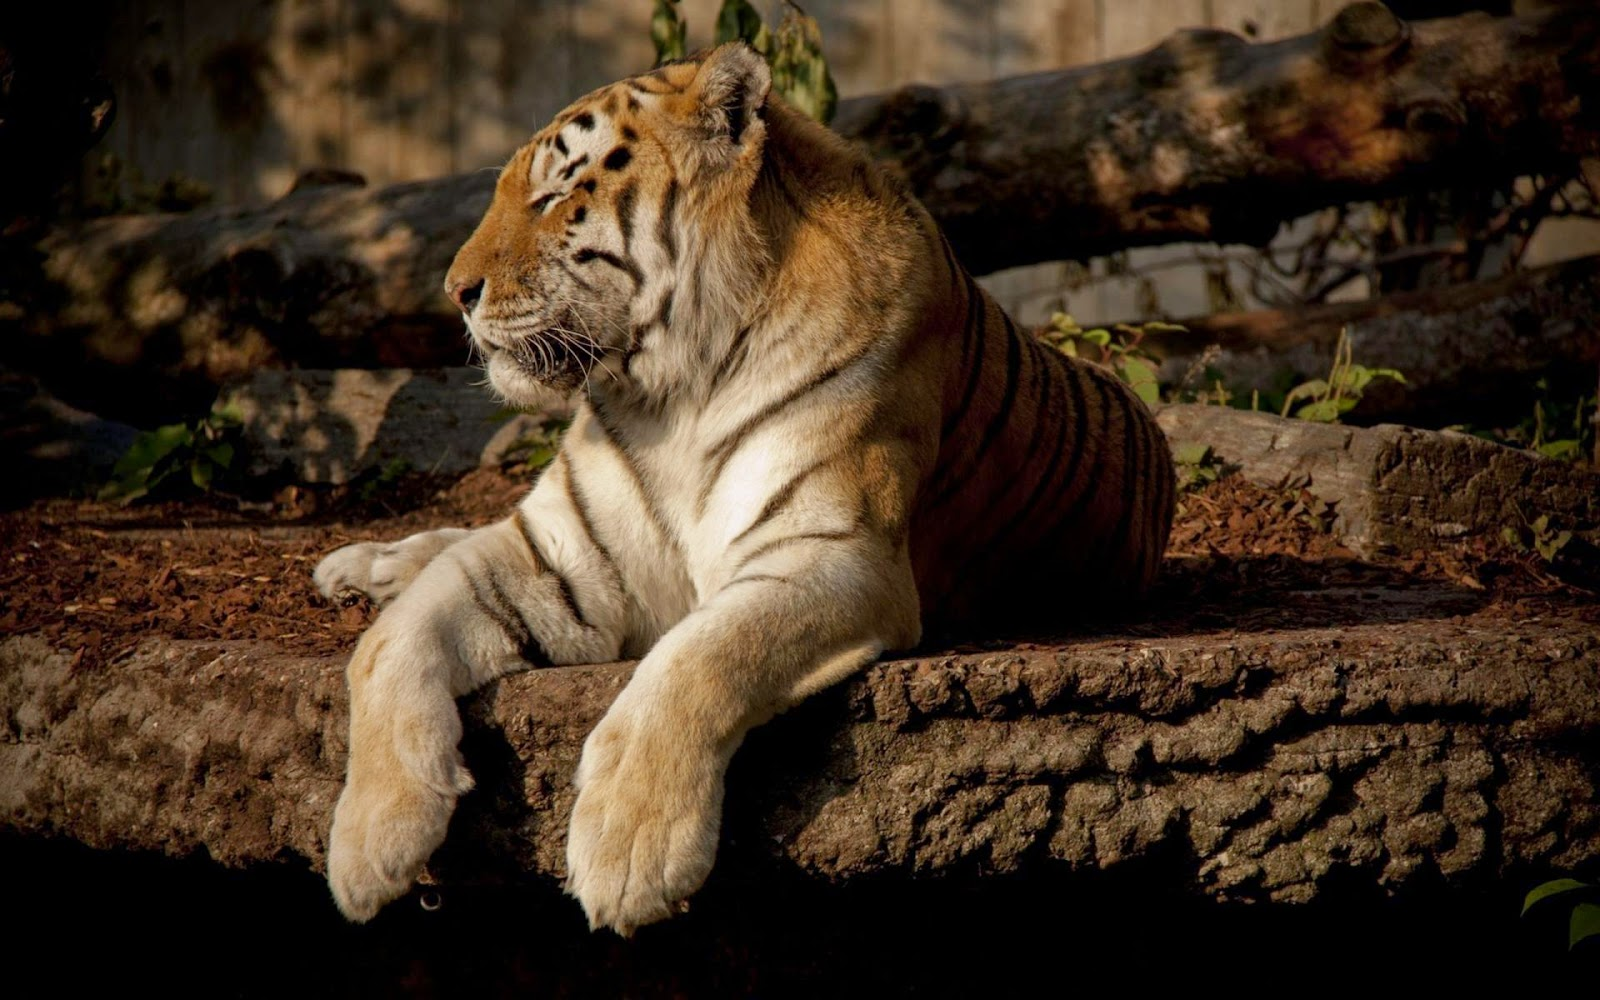 Hd Tiger Full Hd Desktop Wallpapers 1080p